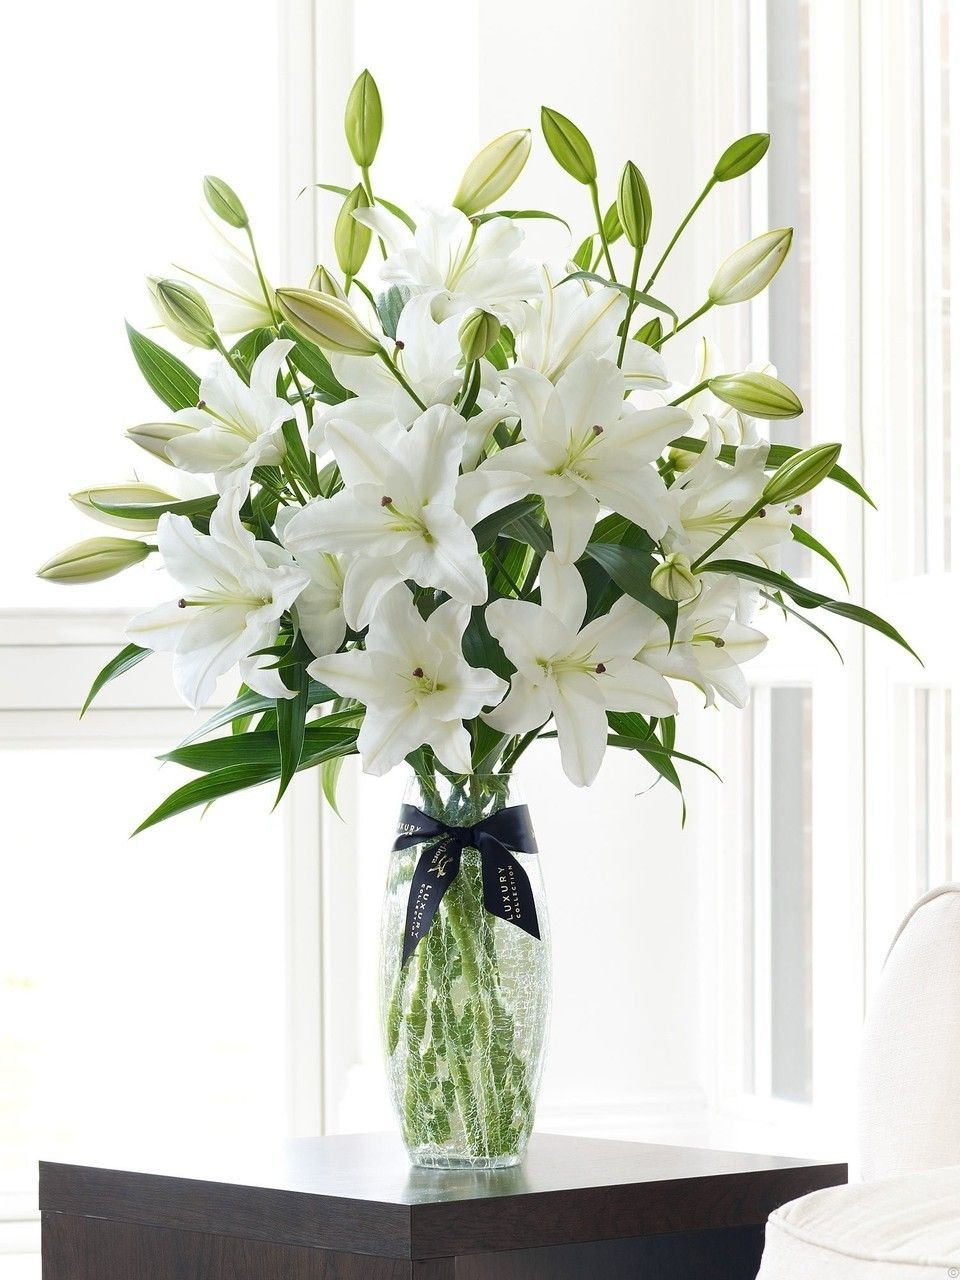 Flowers in vase next day delivery - Urblooms Com Flower Of The Month Club 42 00 Http Flowers In A Vasenext Day